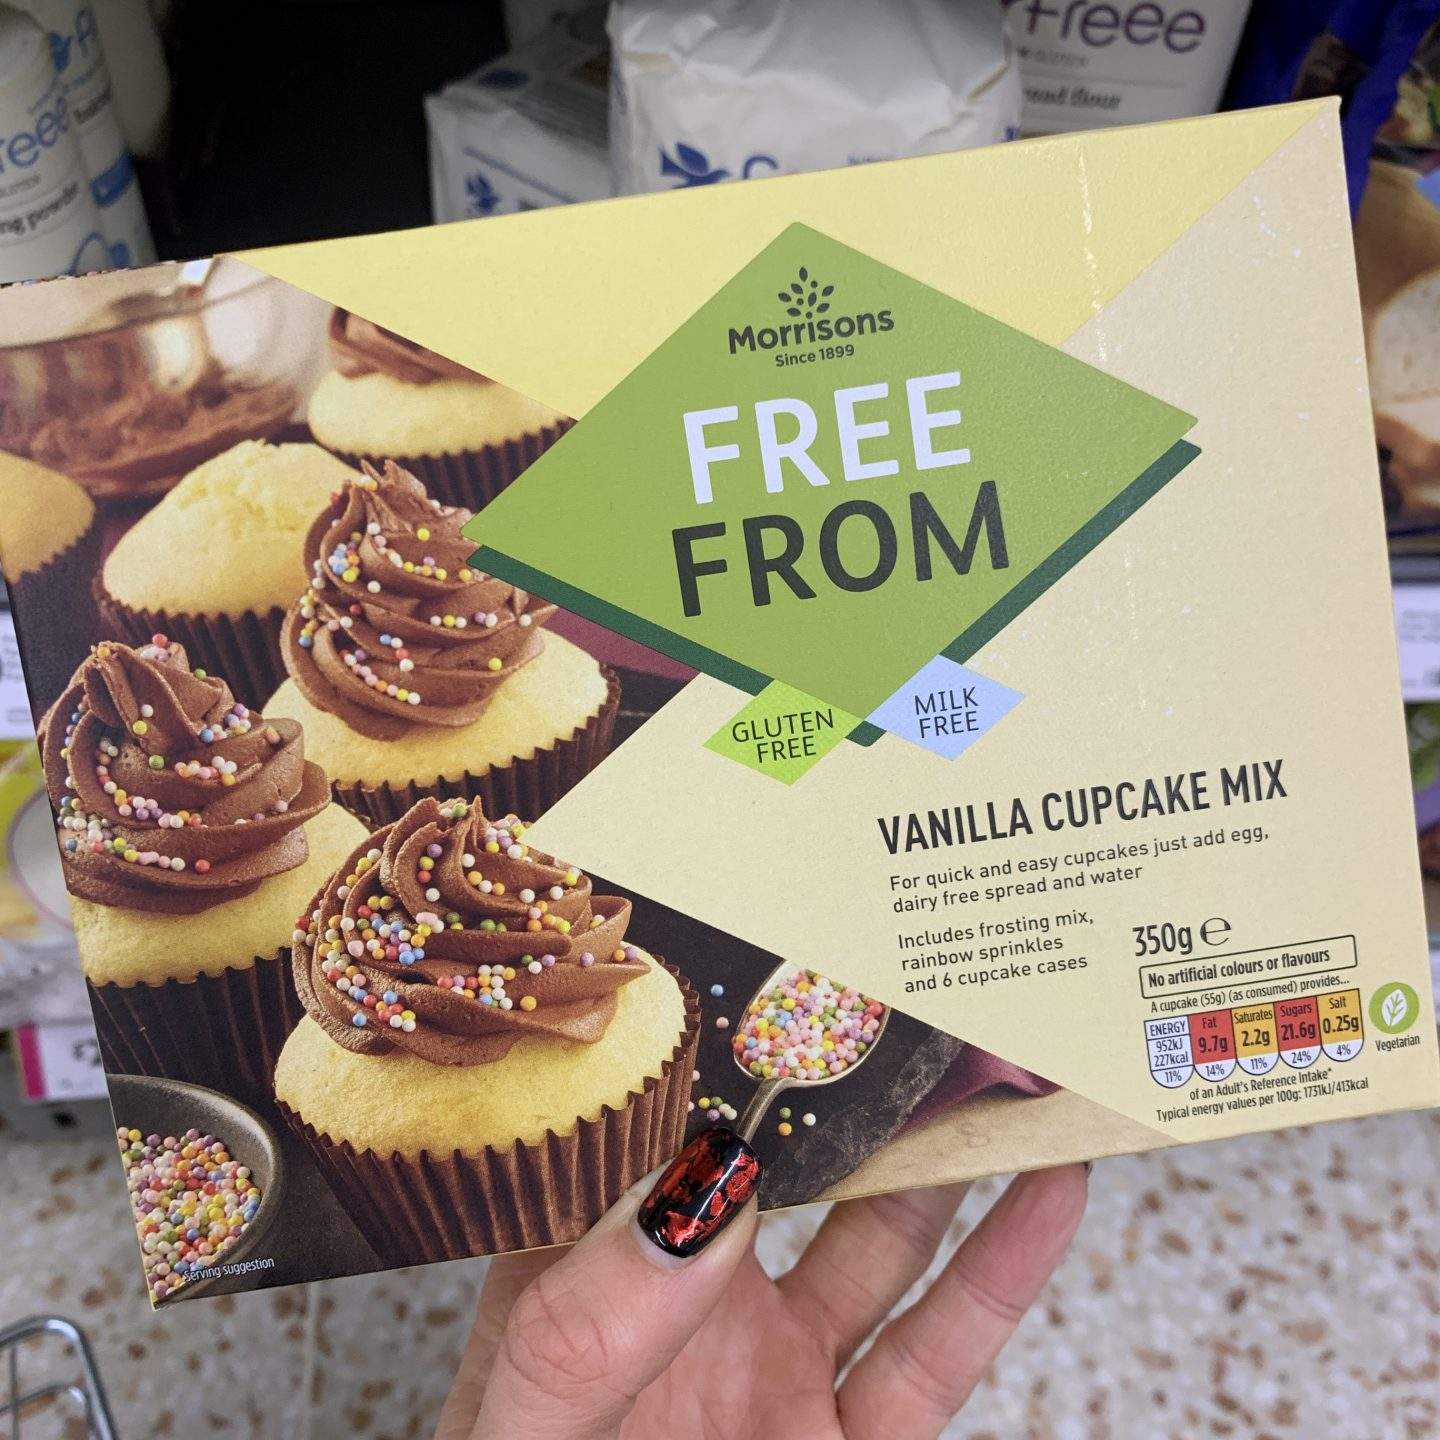 new gluten free products uk november 2019 17